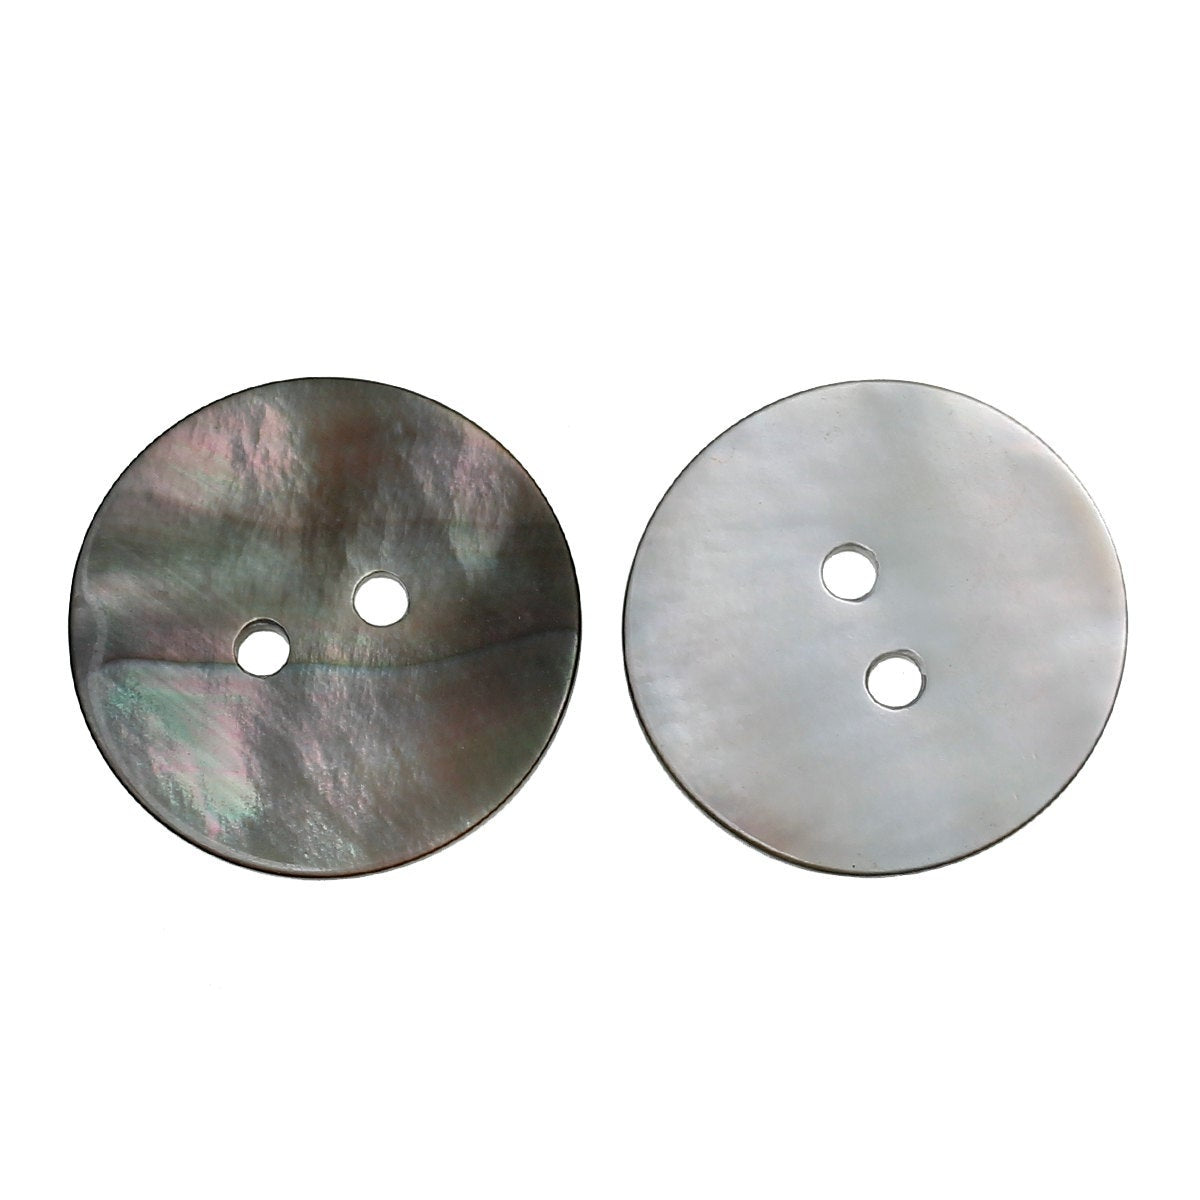 4 Extra Large Shell Buttons - 2 inch - 5cm -  Mother of Pearl Shell Buttons  (27907)